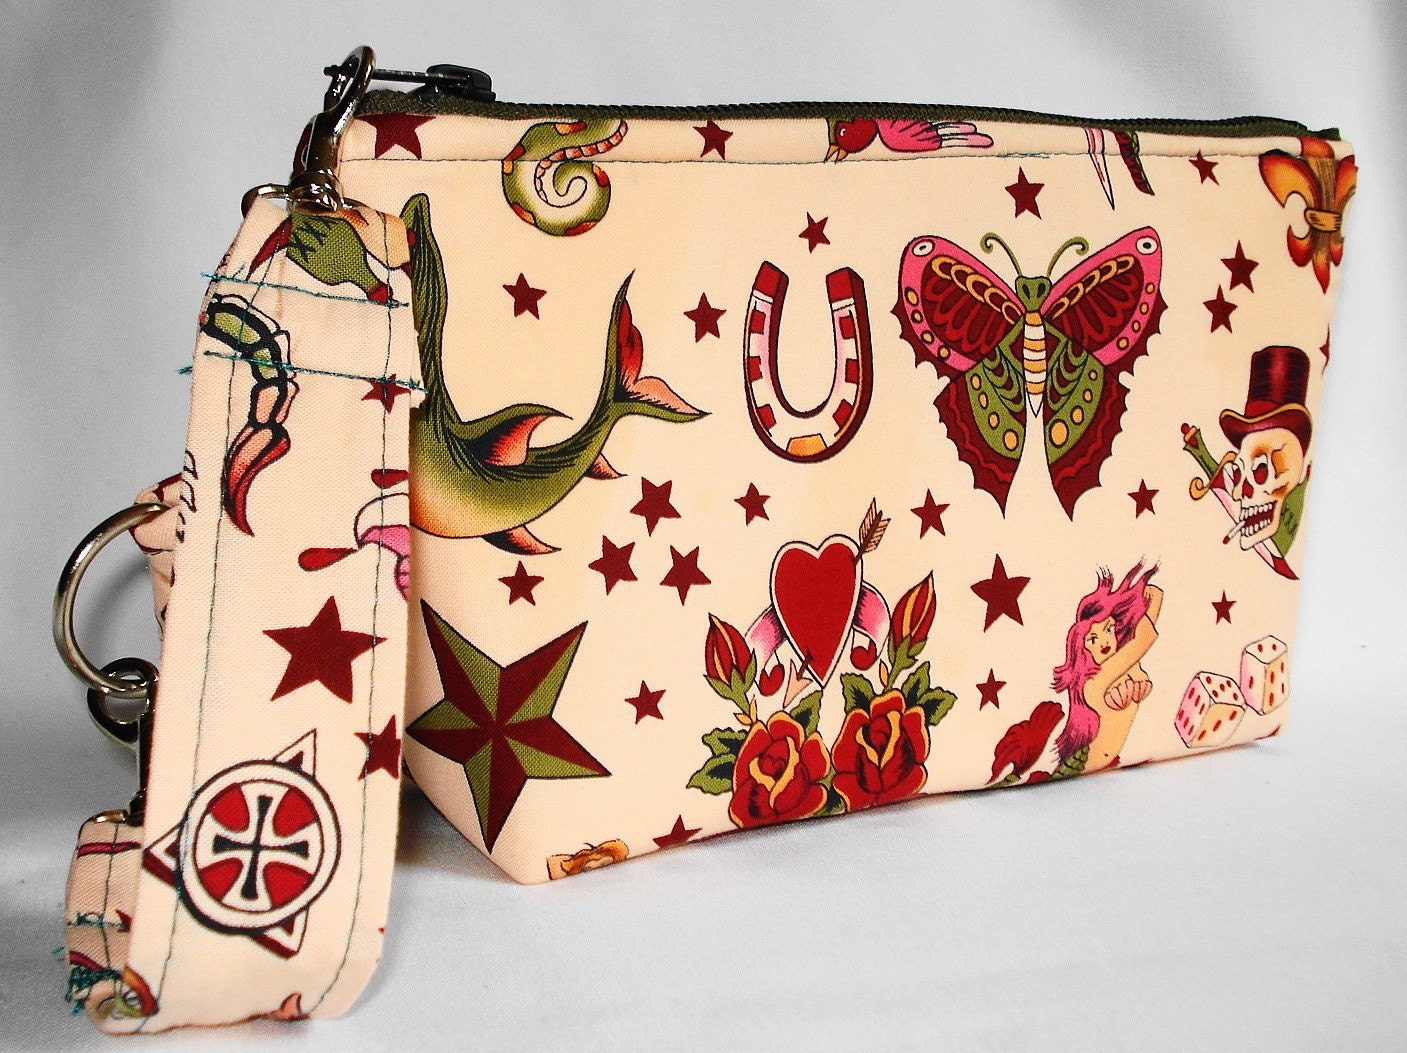 Tattoo Flash Convertible Wristlet --- Retro Old School --- Blush Pink --- VLV,  Rockabilly by WolfBait on Etsy from etsy.com